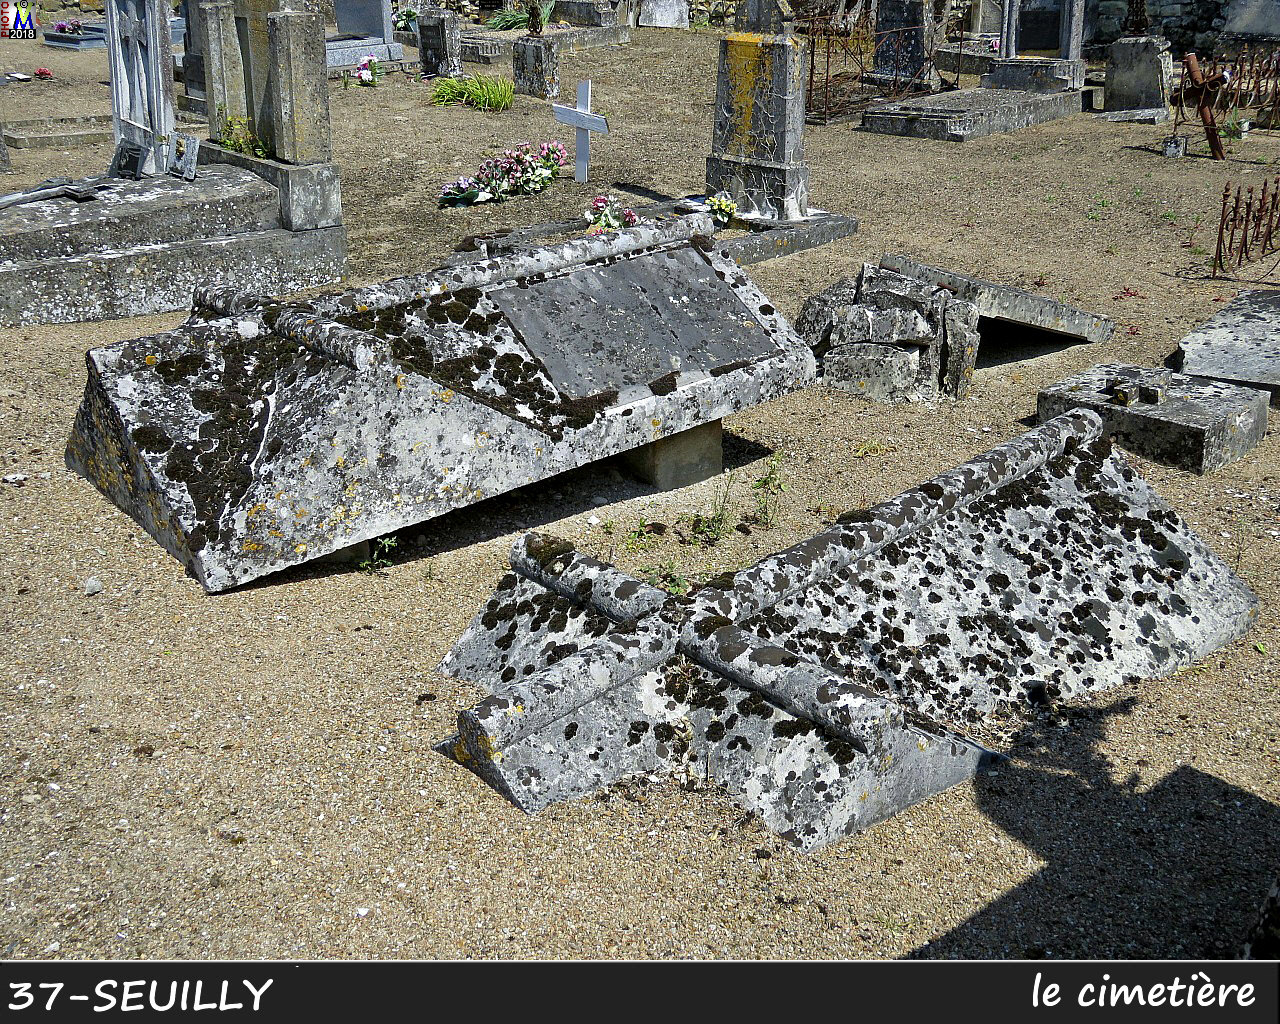 37SEUILLY_cimetiere_1000.jpg